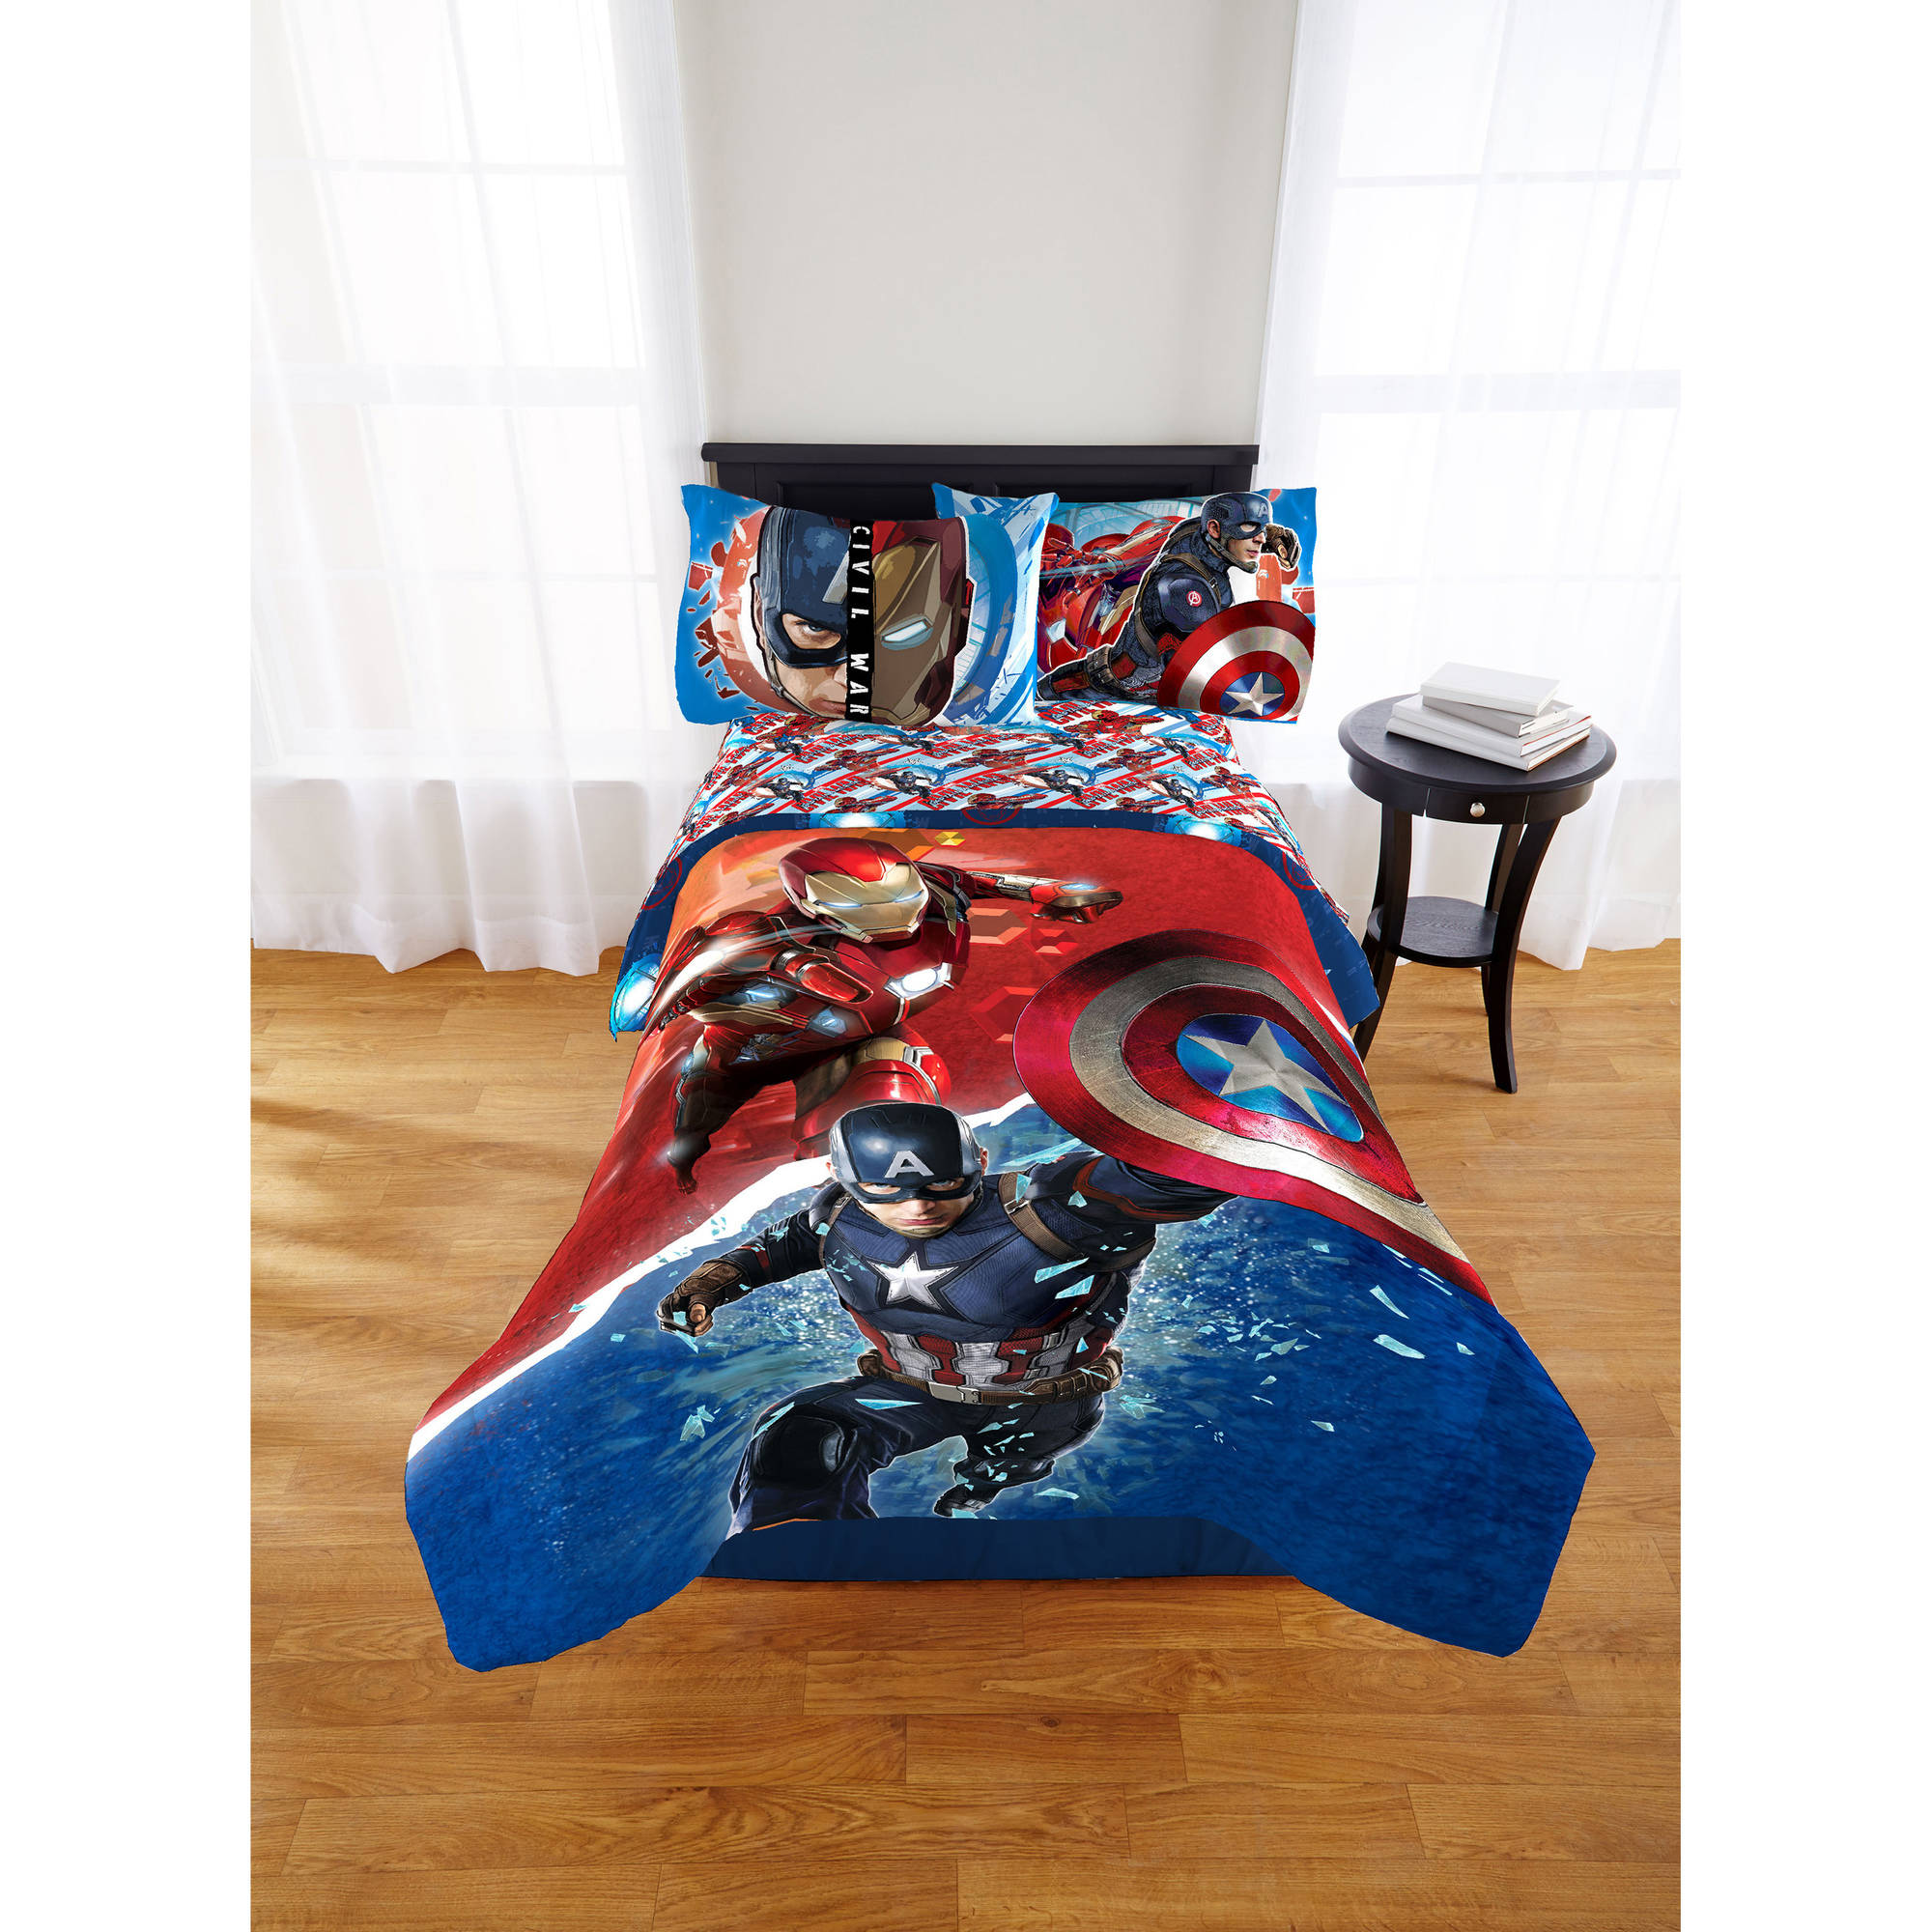 Avengers bedding set twin - Avengers Bedding Set Twin 23